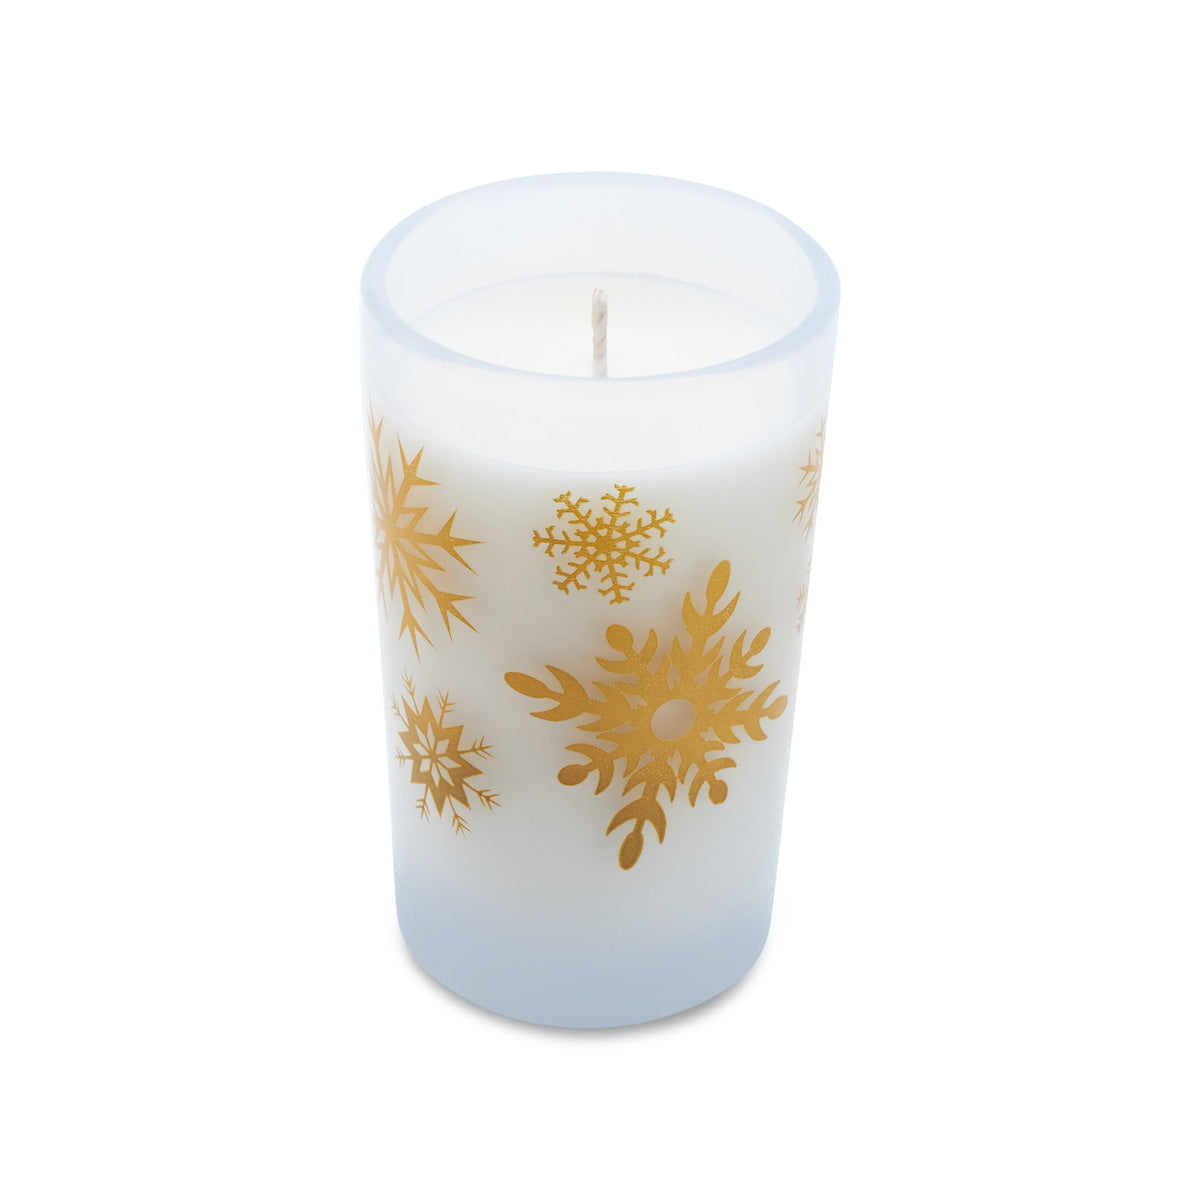 5.5oz Holiday Candle - Frosted White (Gold Snowflakes)